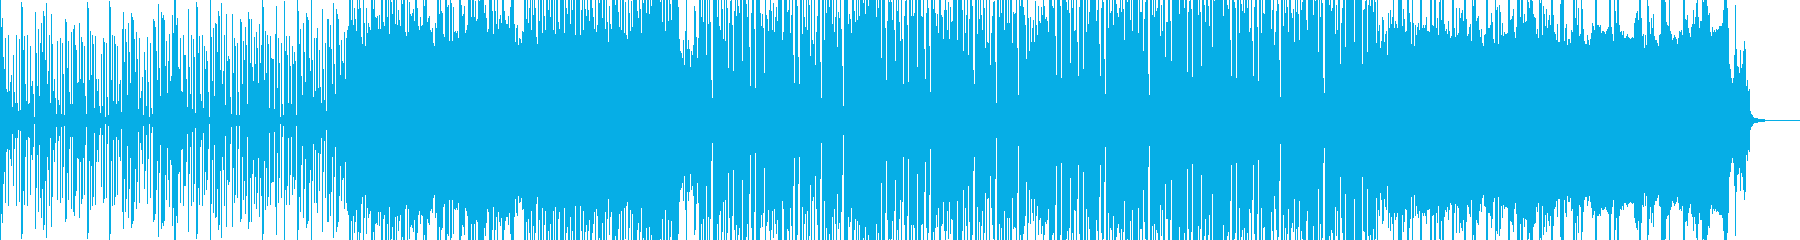 Fashionable 2step's reproduced waveform